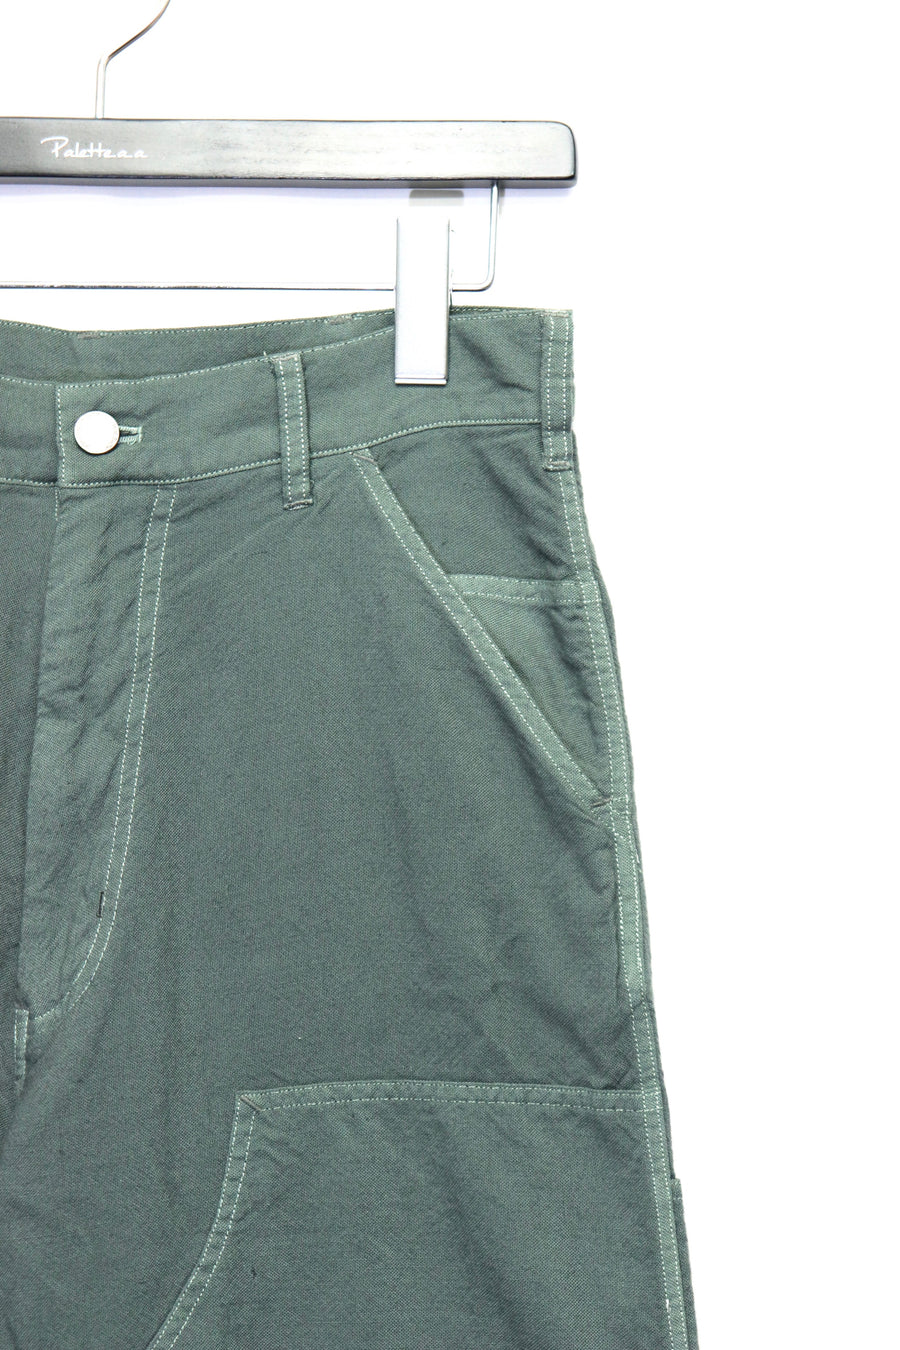 JOHN MASON SMITH  DOUBLE KNEE WORK PANTS(GREEN)